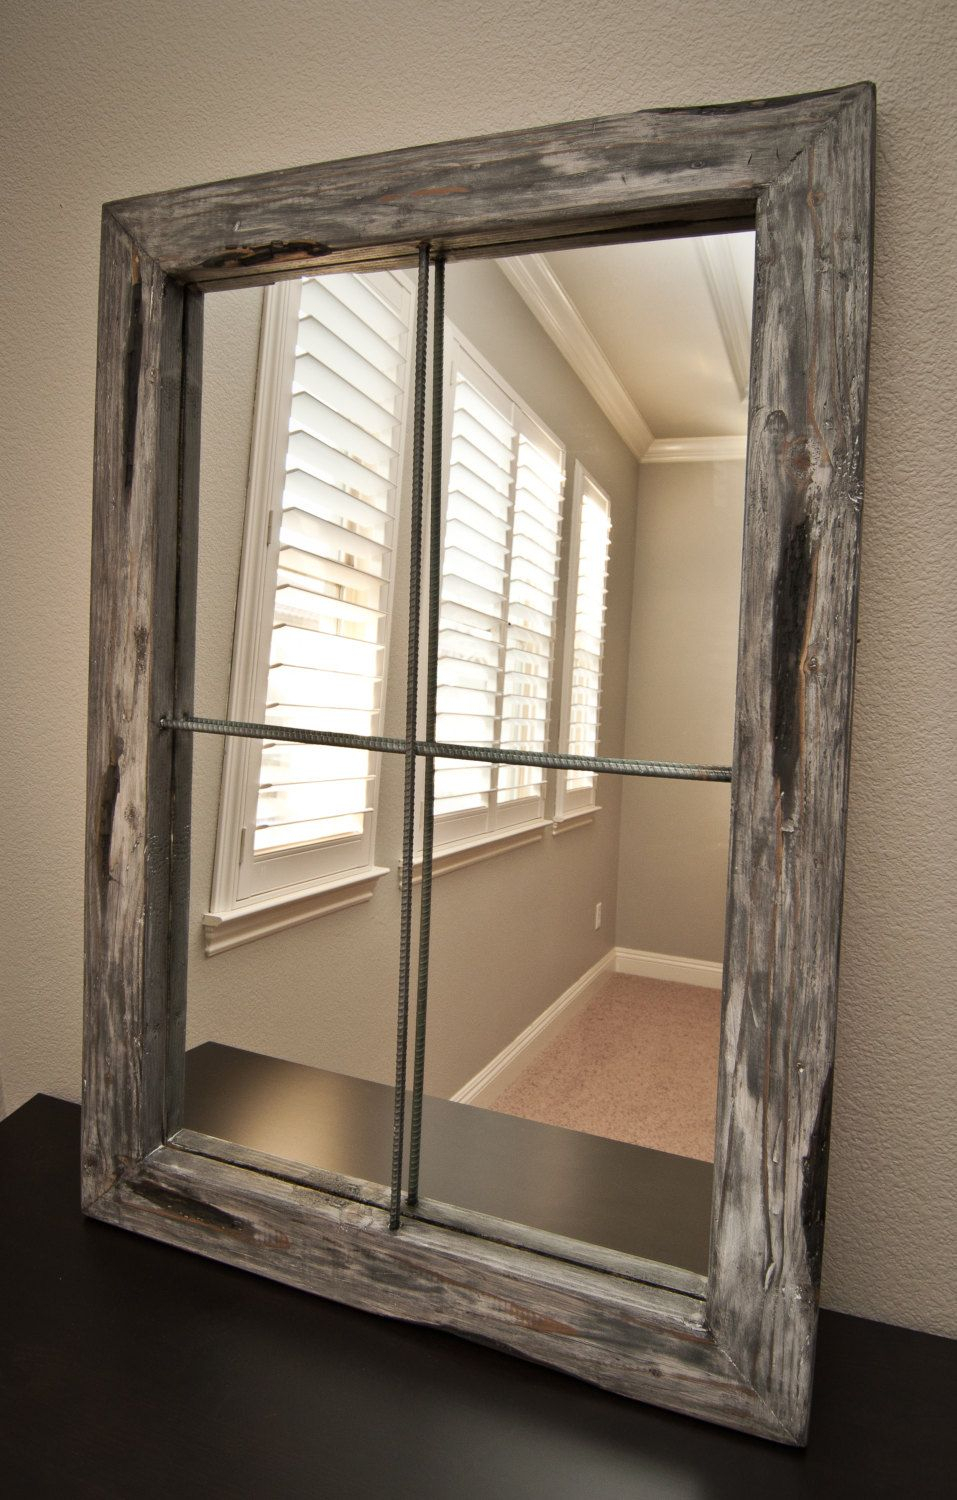 Fake Window Mirror Since I Only Have 3 Windows. | Bedroom within Old Rustic Barn Window Frame (Image 8 of 30)